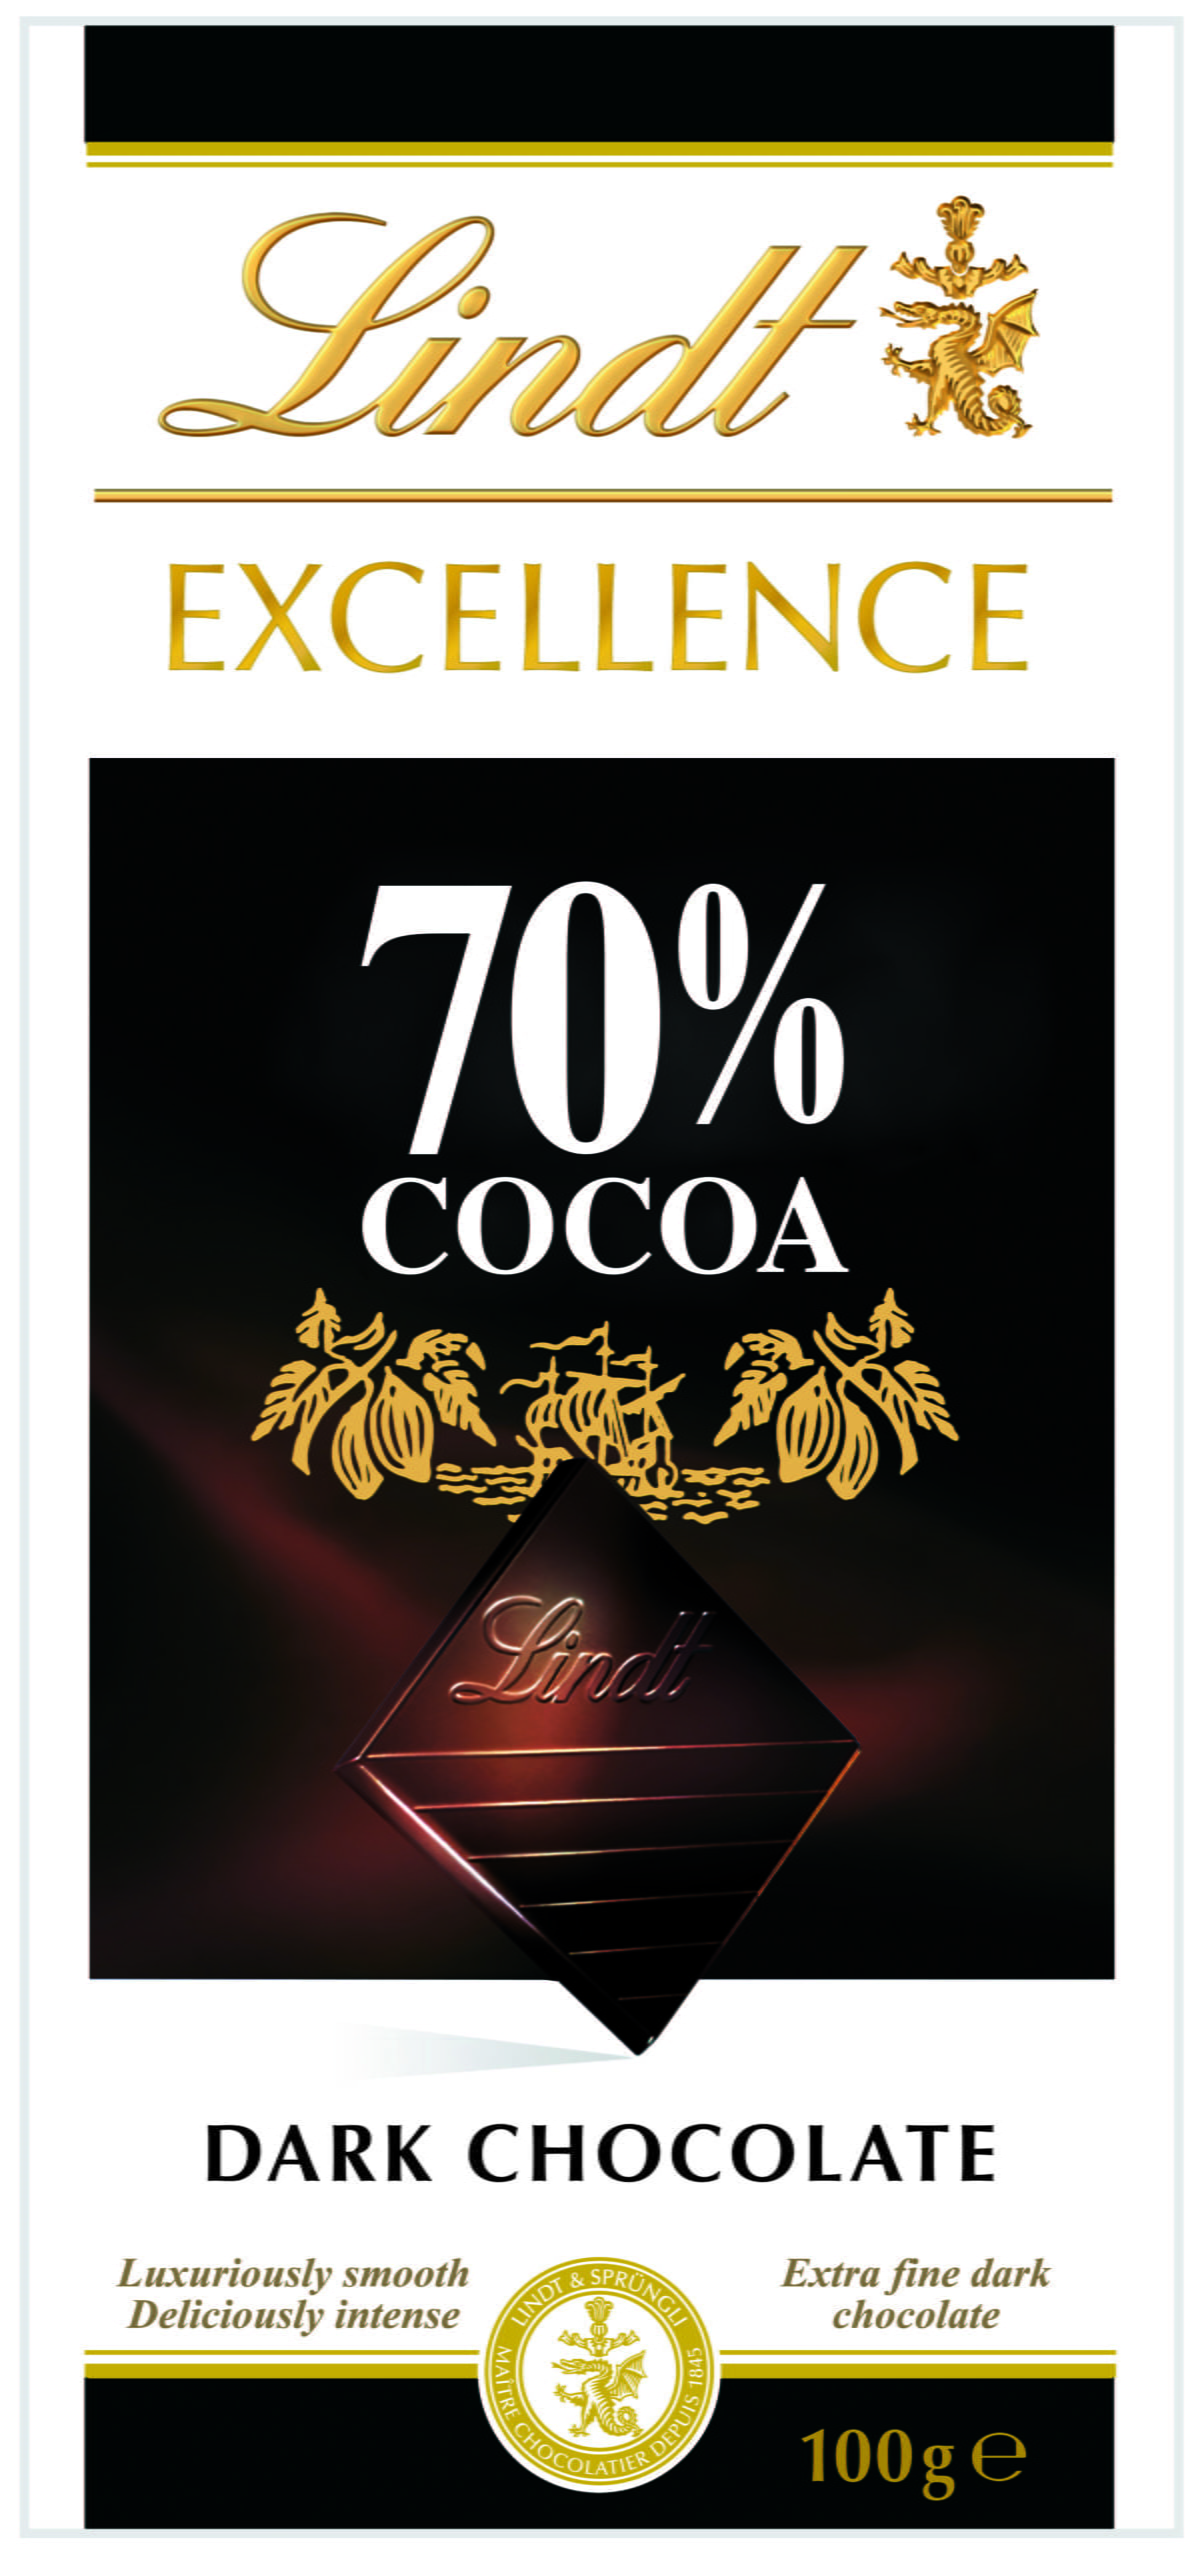 Chocolate Lindt Excellence 70% Cocoa (Dark) 100g